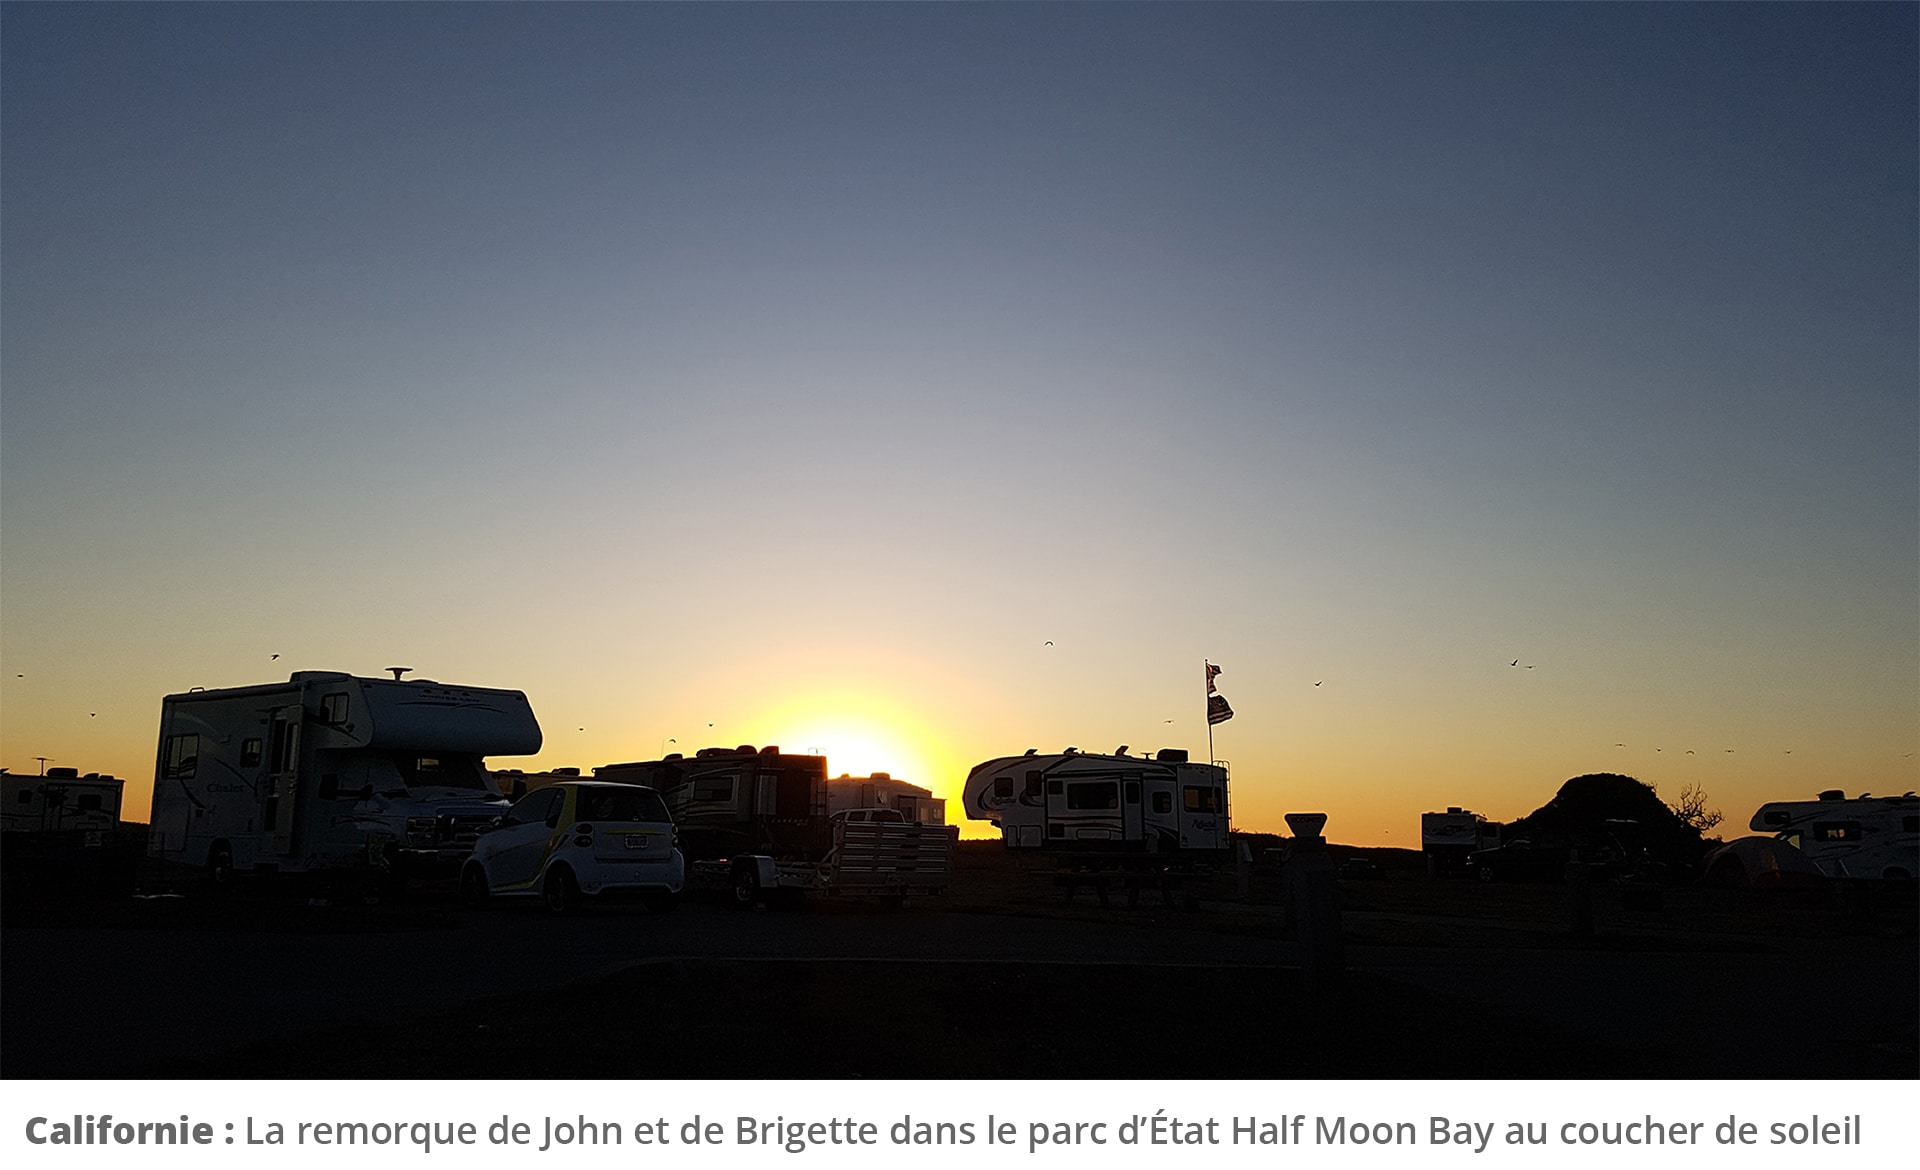 Trailers in sunset